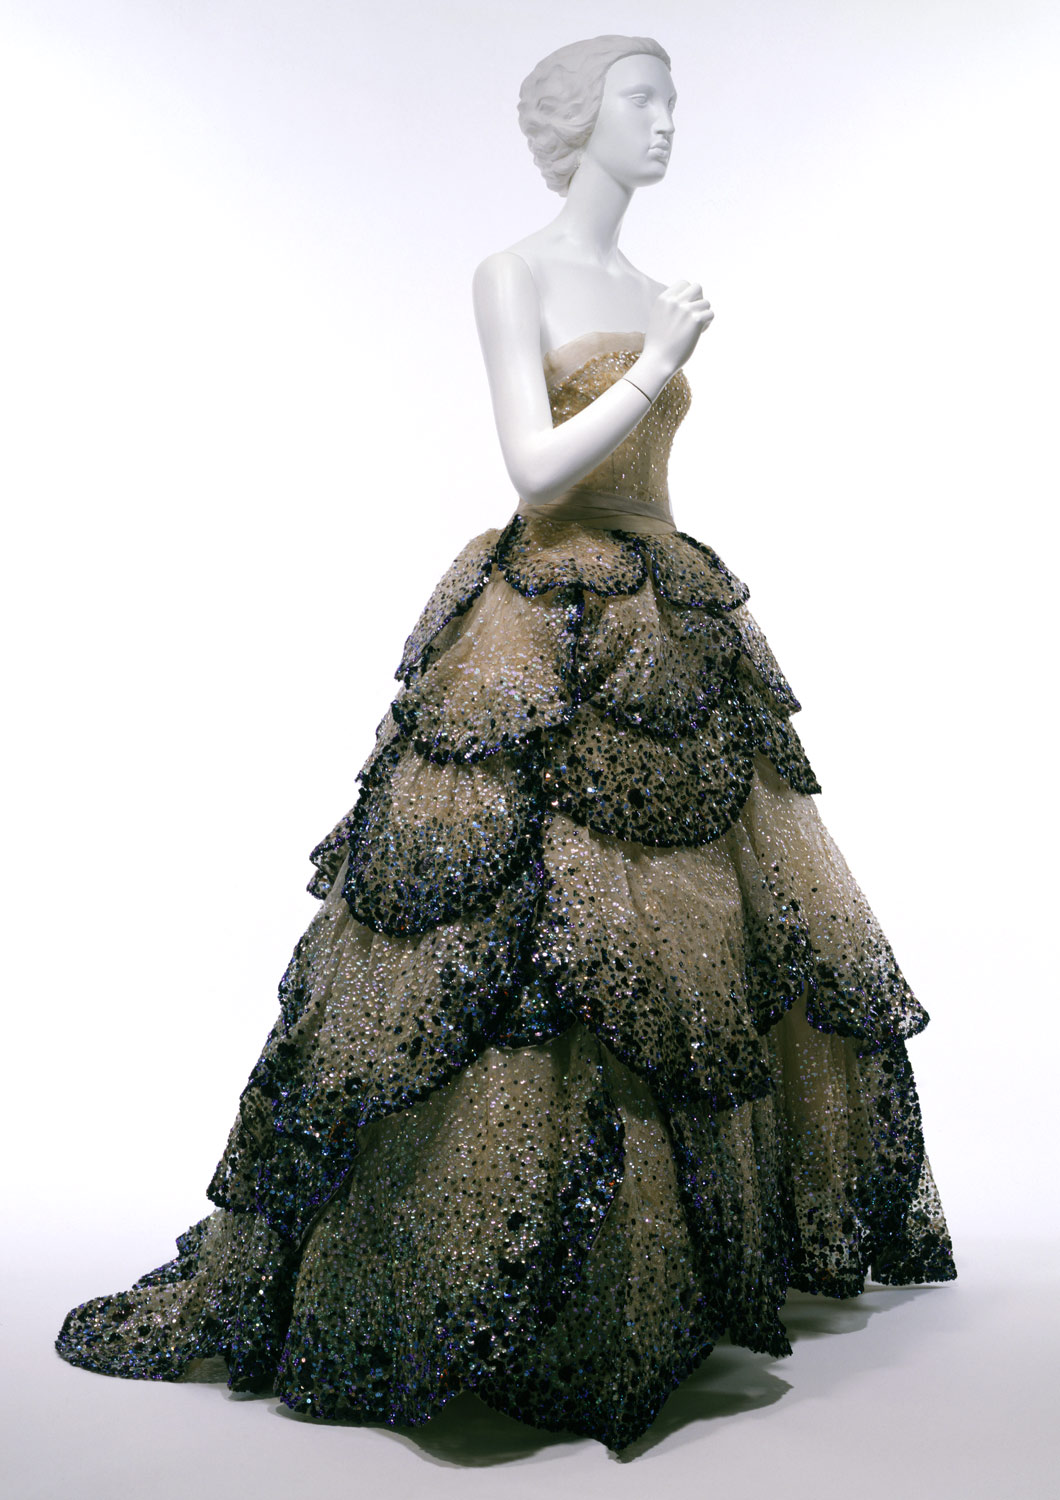 """Junon"" - at the Metropolitan Museum of Art, Costume Institute.    Design House:  House of Dior (French, founded 1947)    Designer:  Christian Dior (French, Granville 1905–1957 Montecatini)    Date:  fall/winter 1949–50   Culture:  French   Medium:  silk, plastic   Credit Line:  Gift of Mrs. Byron C. Foy, 1953   Accession Number:  C.I.53.40.5a–e"